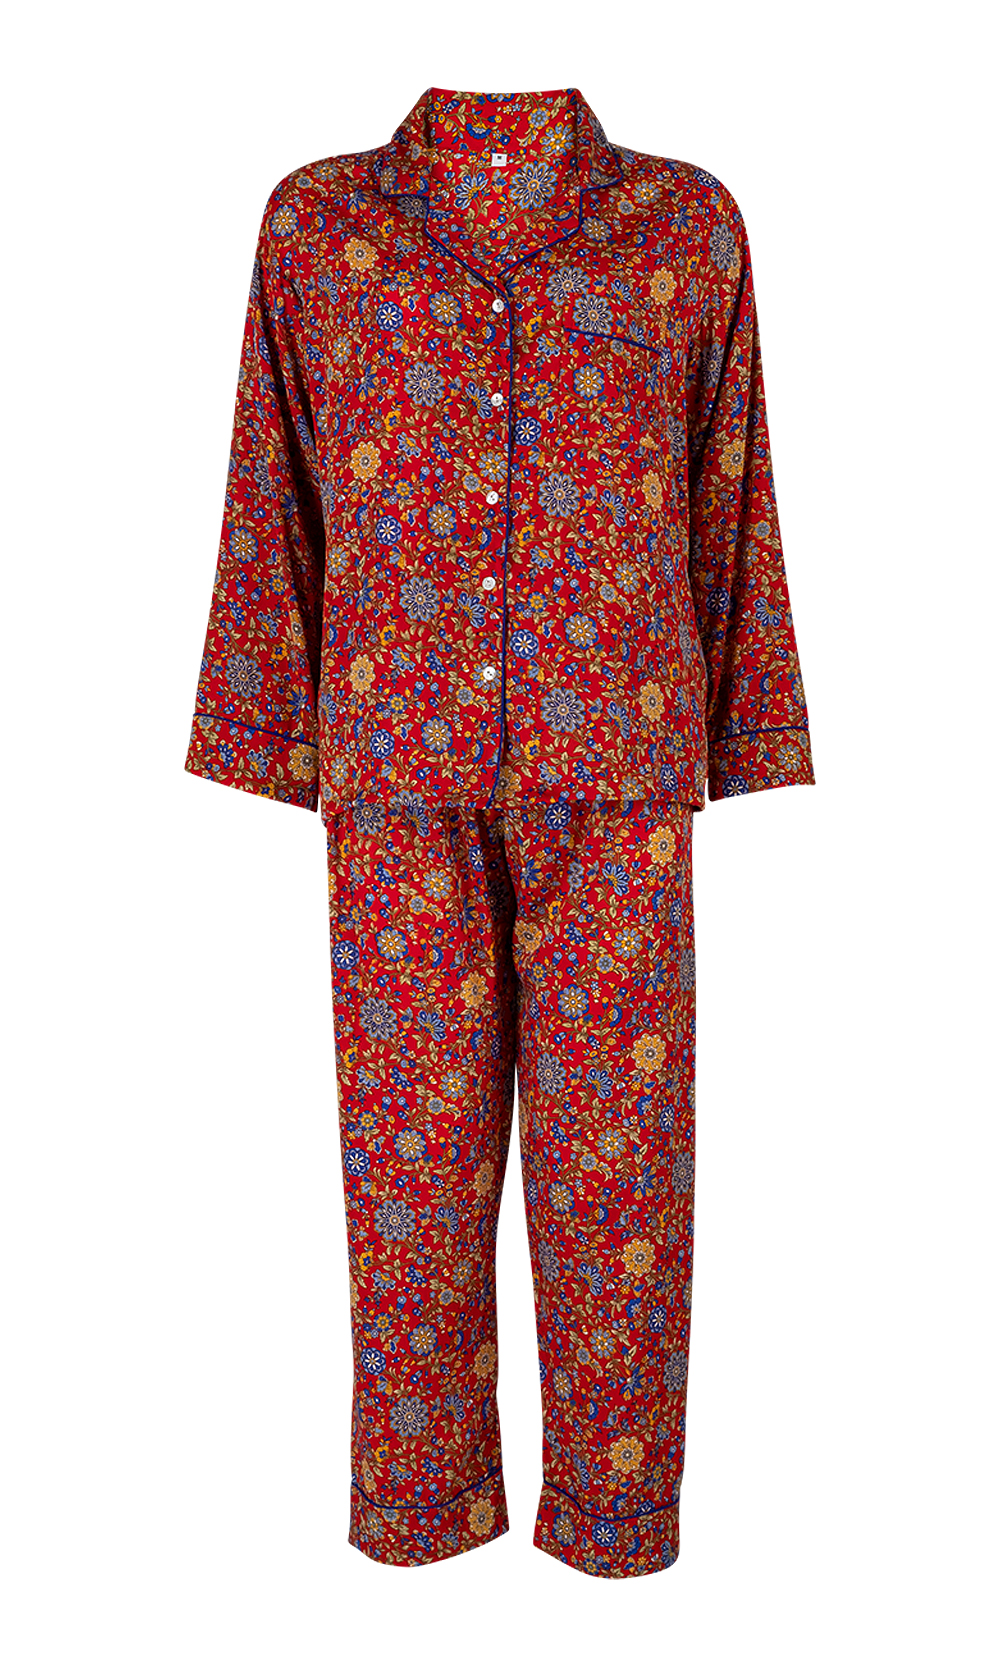 Red Luxurious Sleepwear & Pyjamas Set - Set